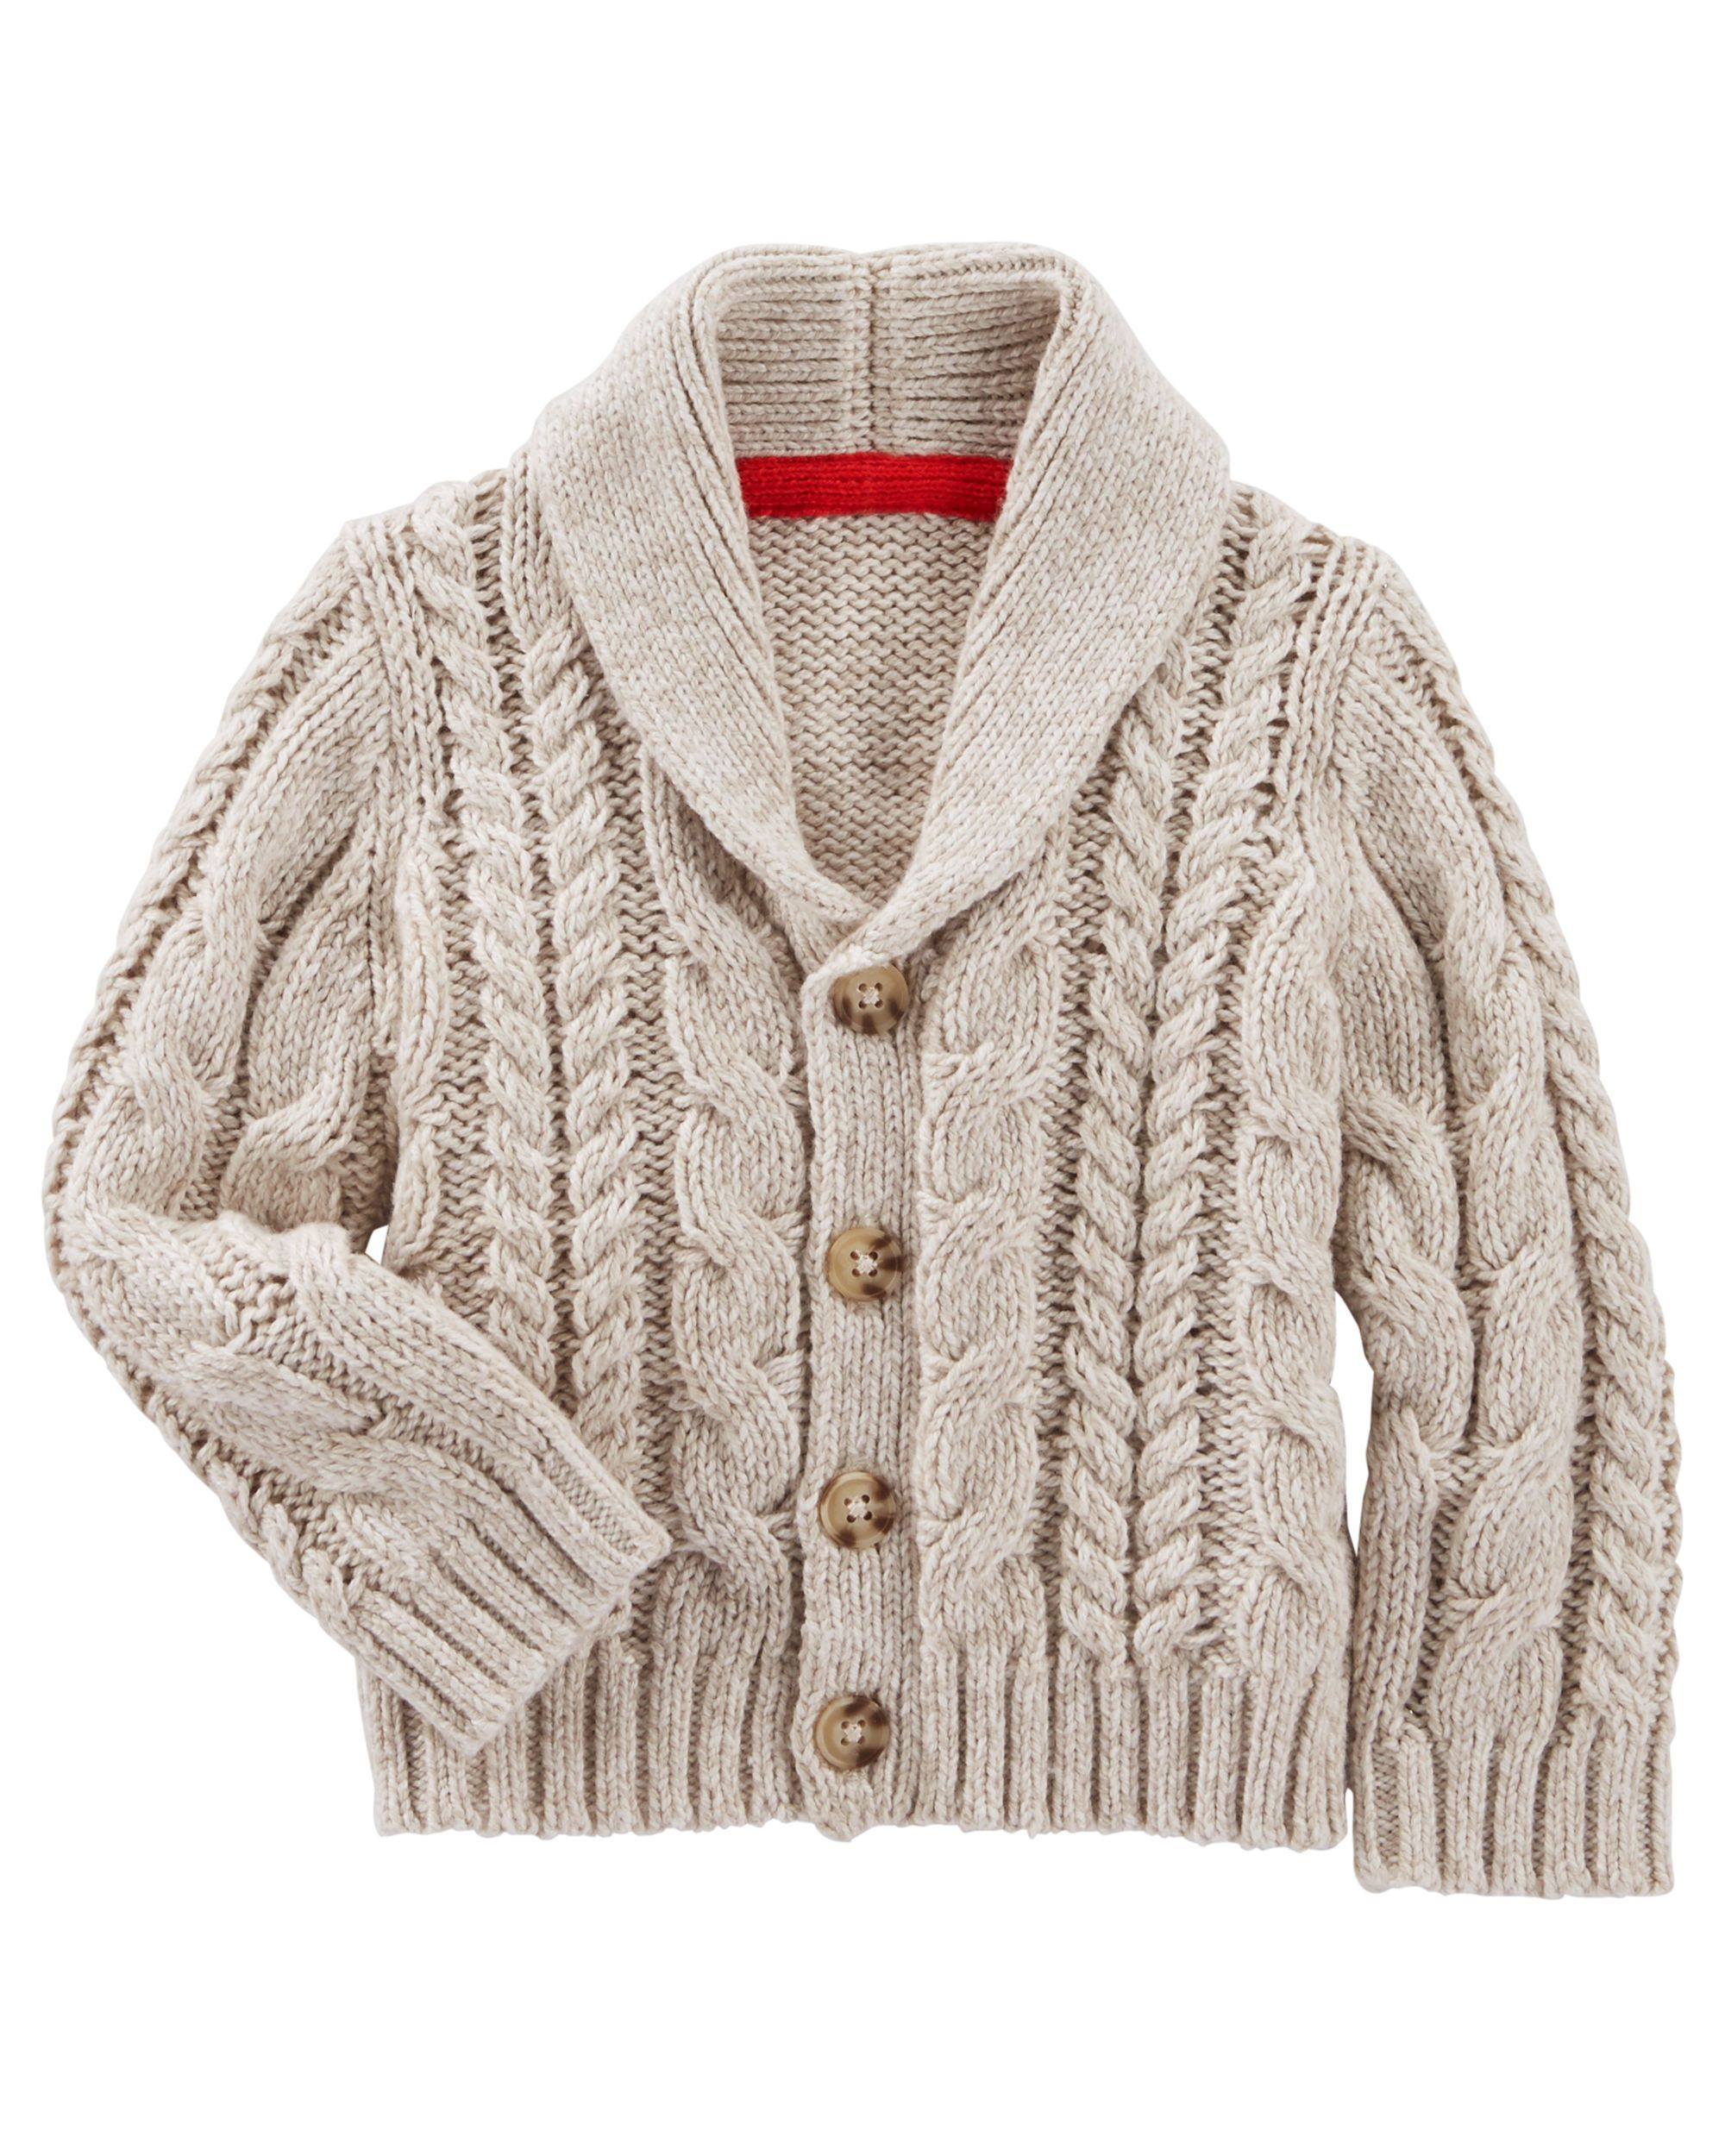 4595a1168 Baby Boy Shawl Collar Cardigan from OshKosh B'gosh. Shop clothing &  accessories from a trusted name in kids, toddlers, and baby clothes.